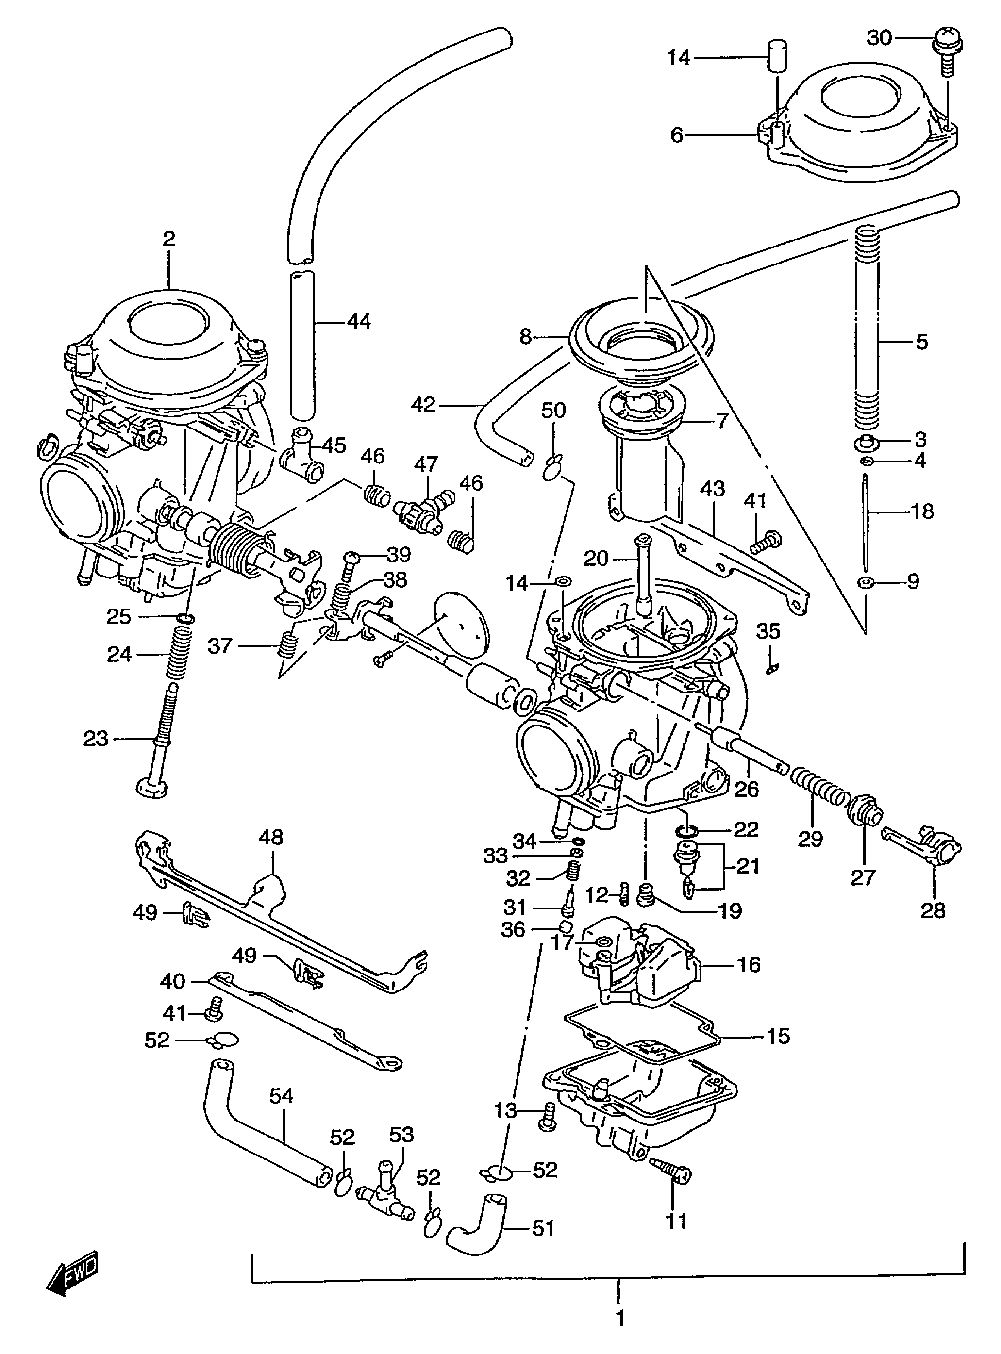 [WRG-4500] F650 Engine Diagram